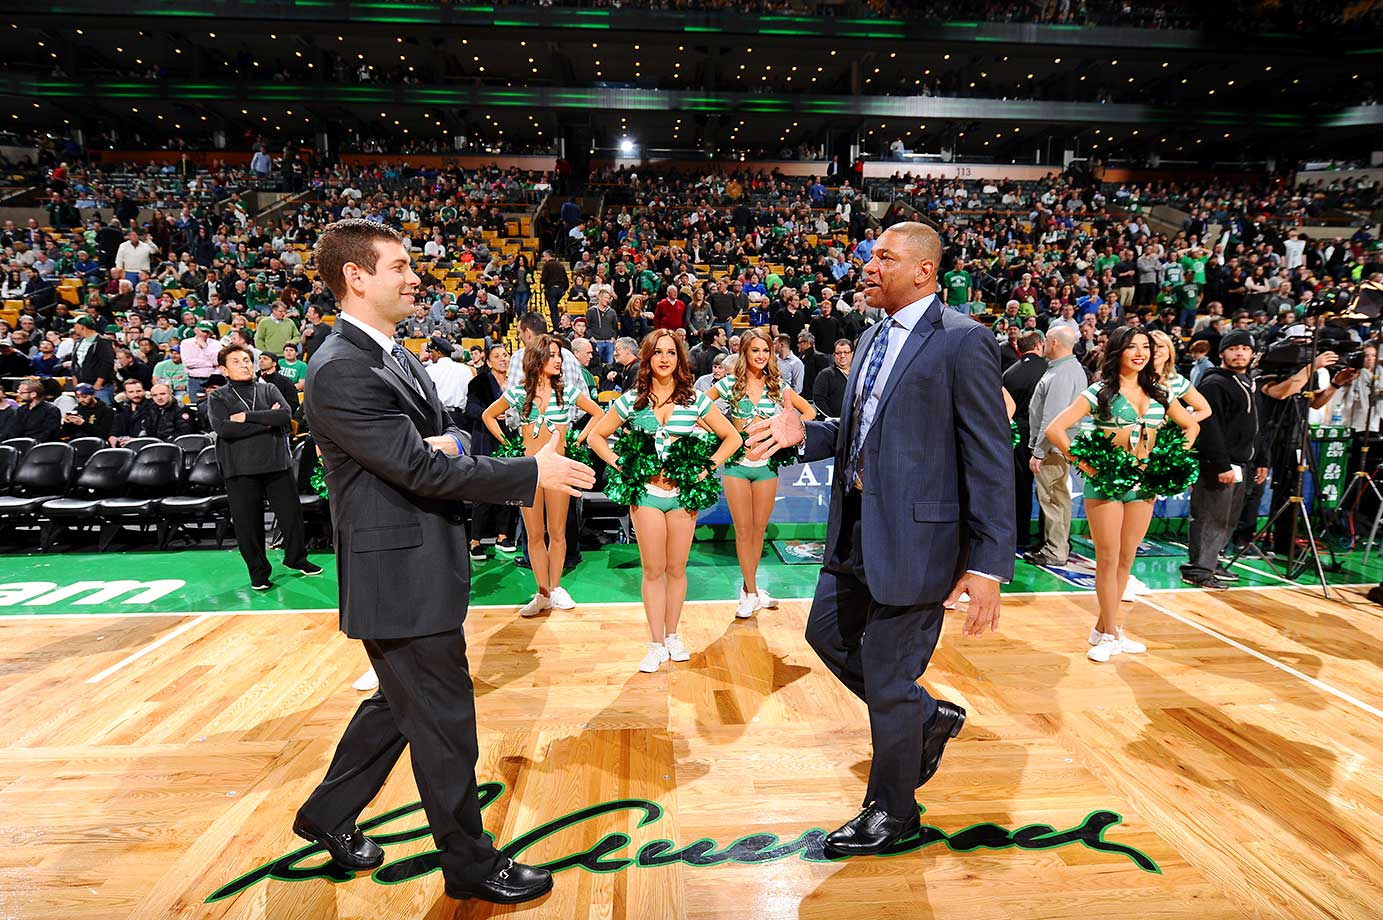 Brad Stevens of the Boston Celtics shakes hands with former Celtics coach Doc Rivers, head coach of the visiting Los Angeles Clippers.